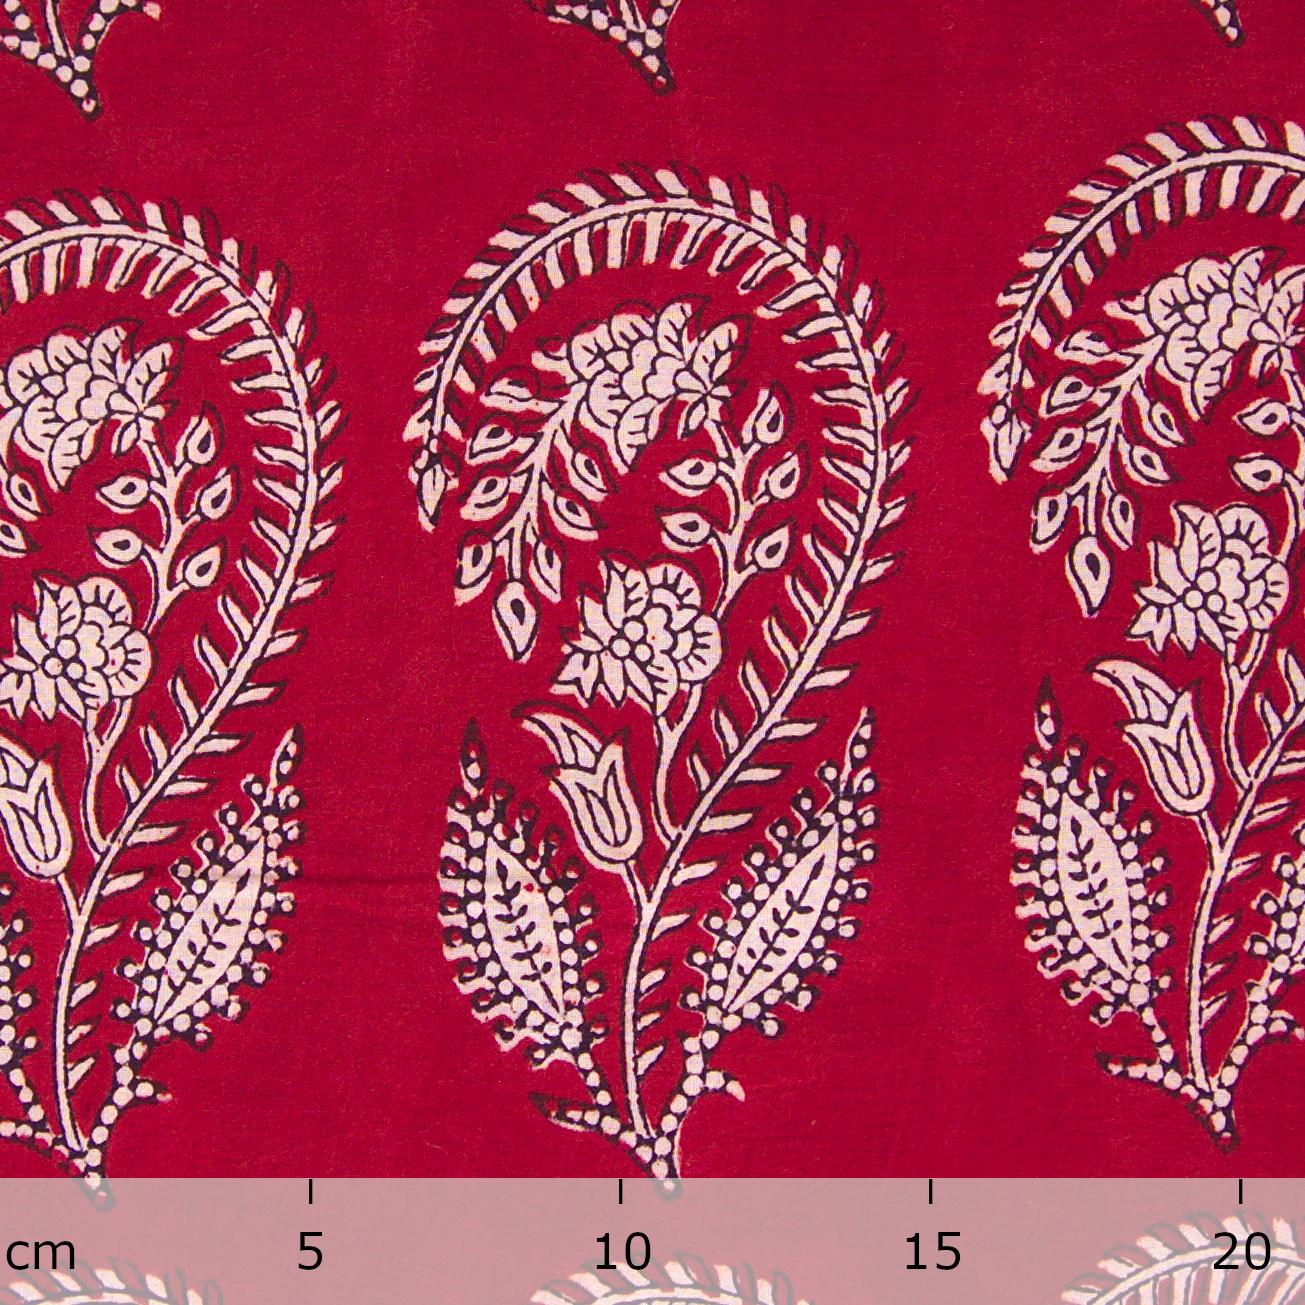 100% Block - Printed Cotton Fabric From India - Scorpion Design - Iron Rust Black & Alizarin Red Dyes - Ruler - Live